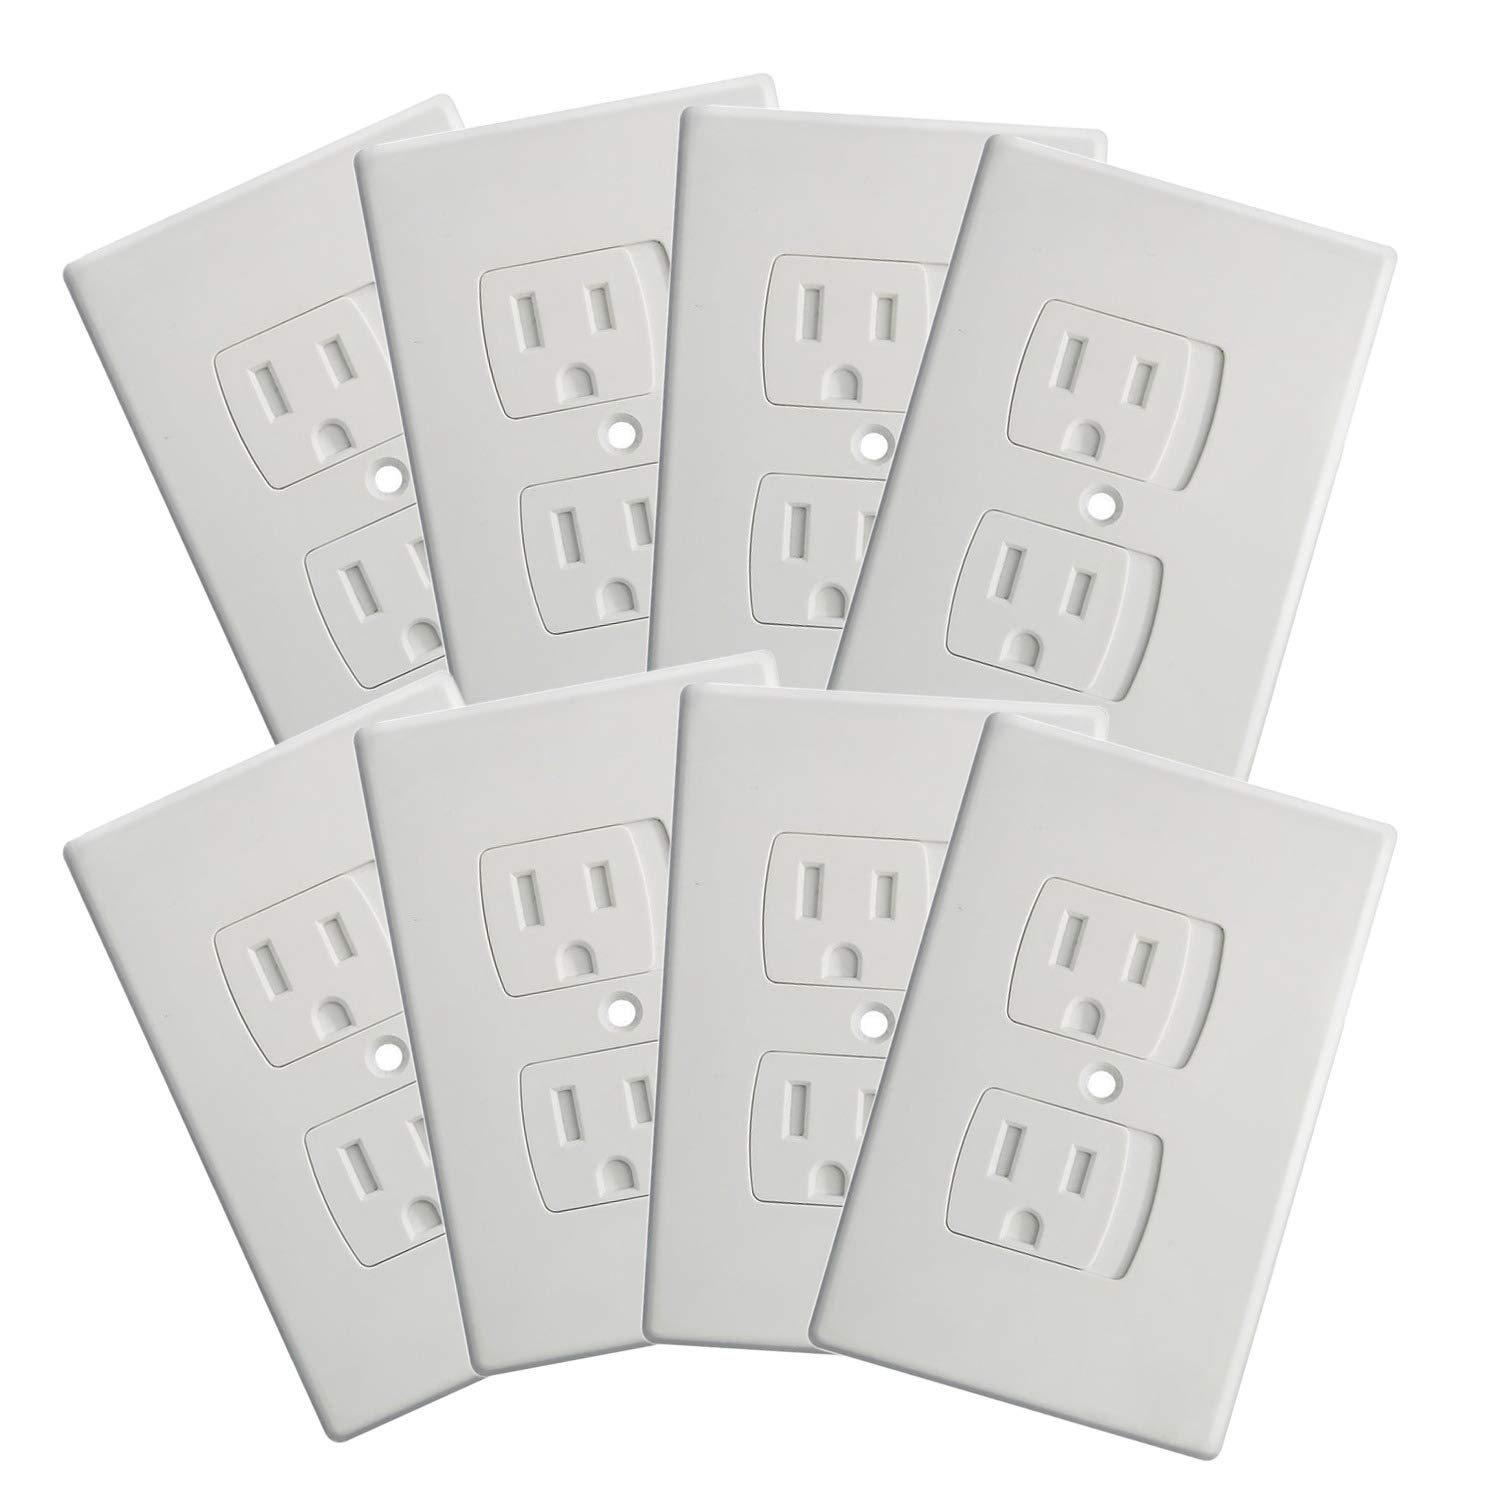 (8-Pack) Upgraded Self Closing Electrical Outlet Covers | Child Proof Safety Universal Wall Socket Plate | Automatic Sliding Cap Cover Standard Wall Outlet Covers